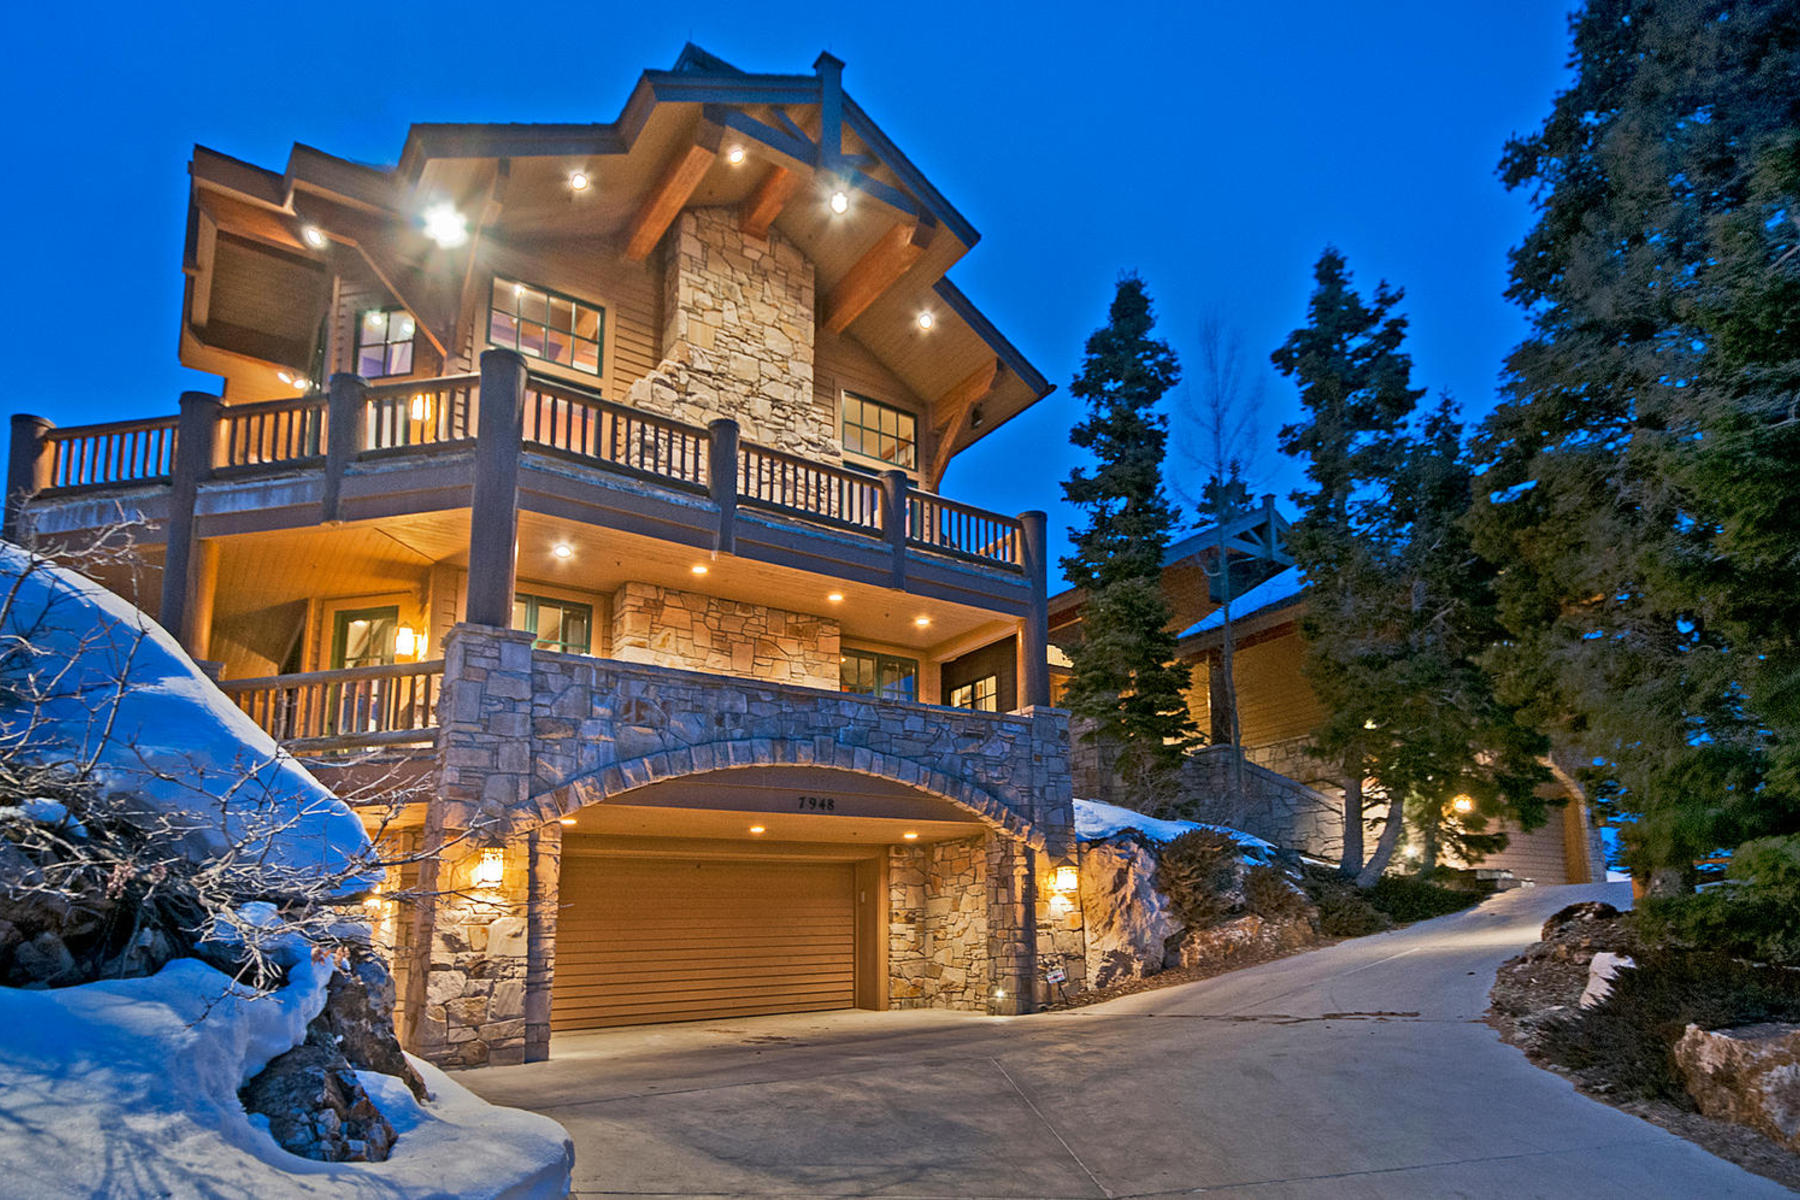 独户住宅 为 销售 在 Timeless Deer Valley Ski-In Ski-out Mountain Retreat 7948 Red Tail Ct 帕克城, 犹他州, 84060 美国